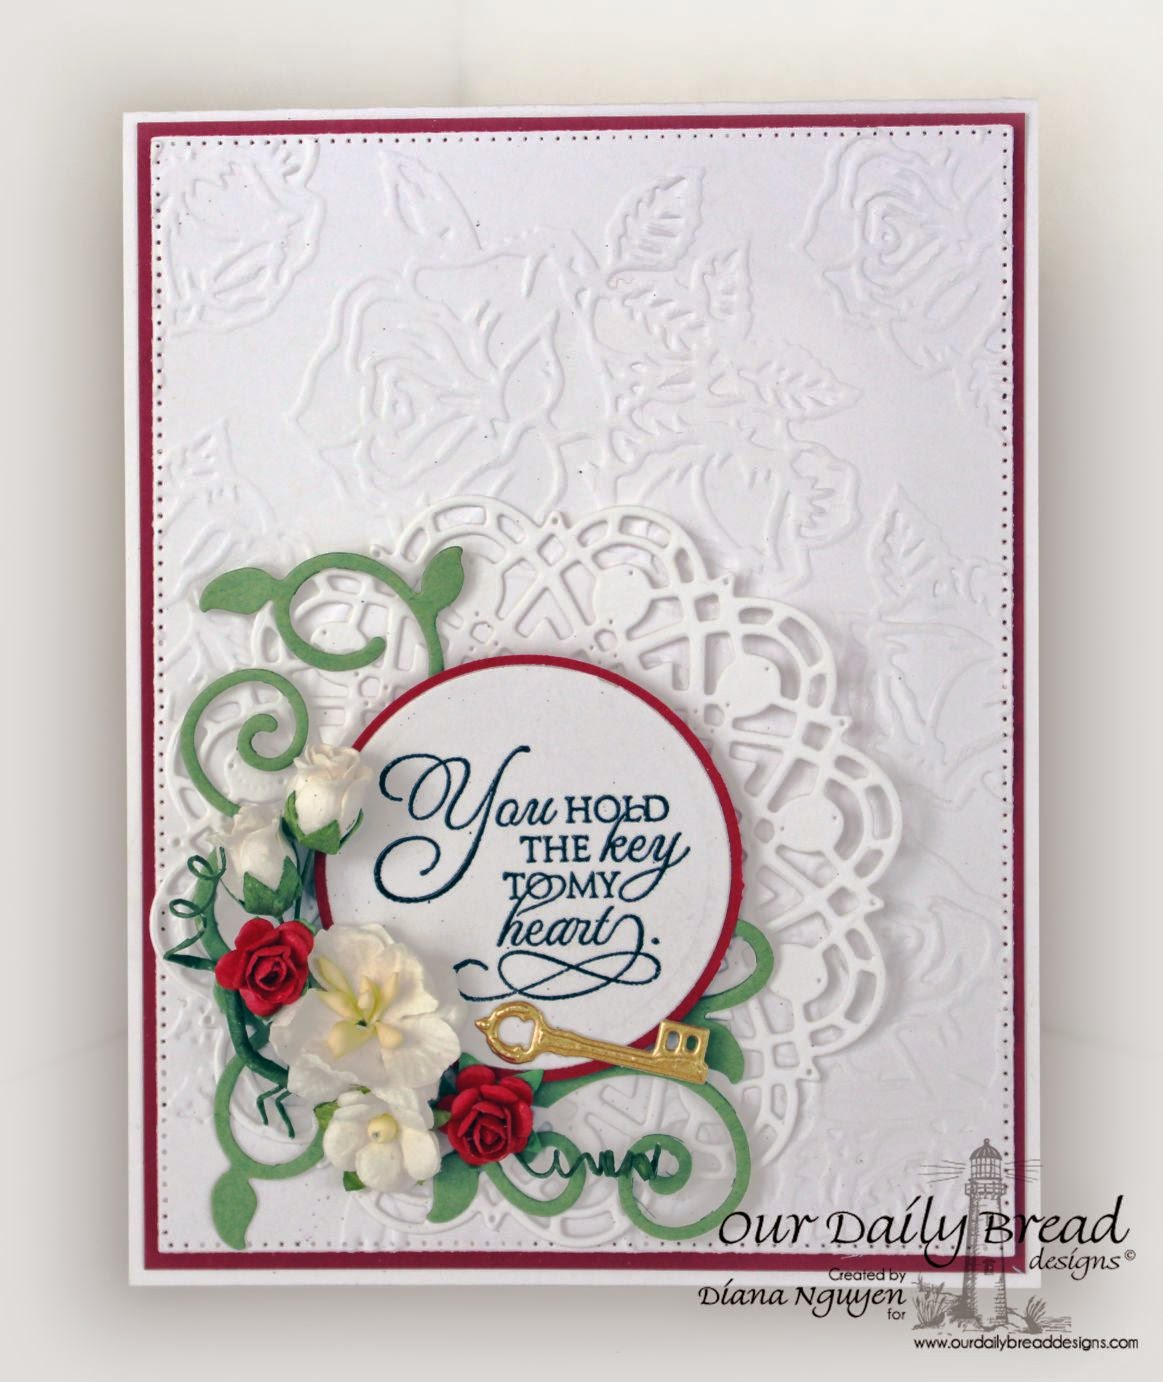 Our Daily Bread Designs, Key to Heaven, Flourished Star Pattern, Fancy Foliage, Doily, Angel WIngs, Designed by Diana Nguyen